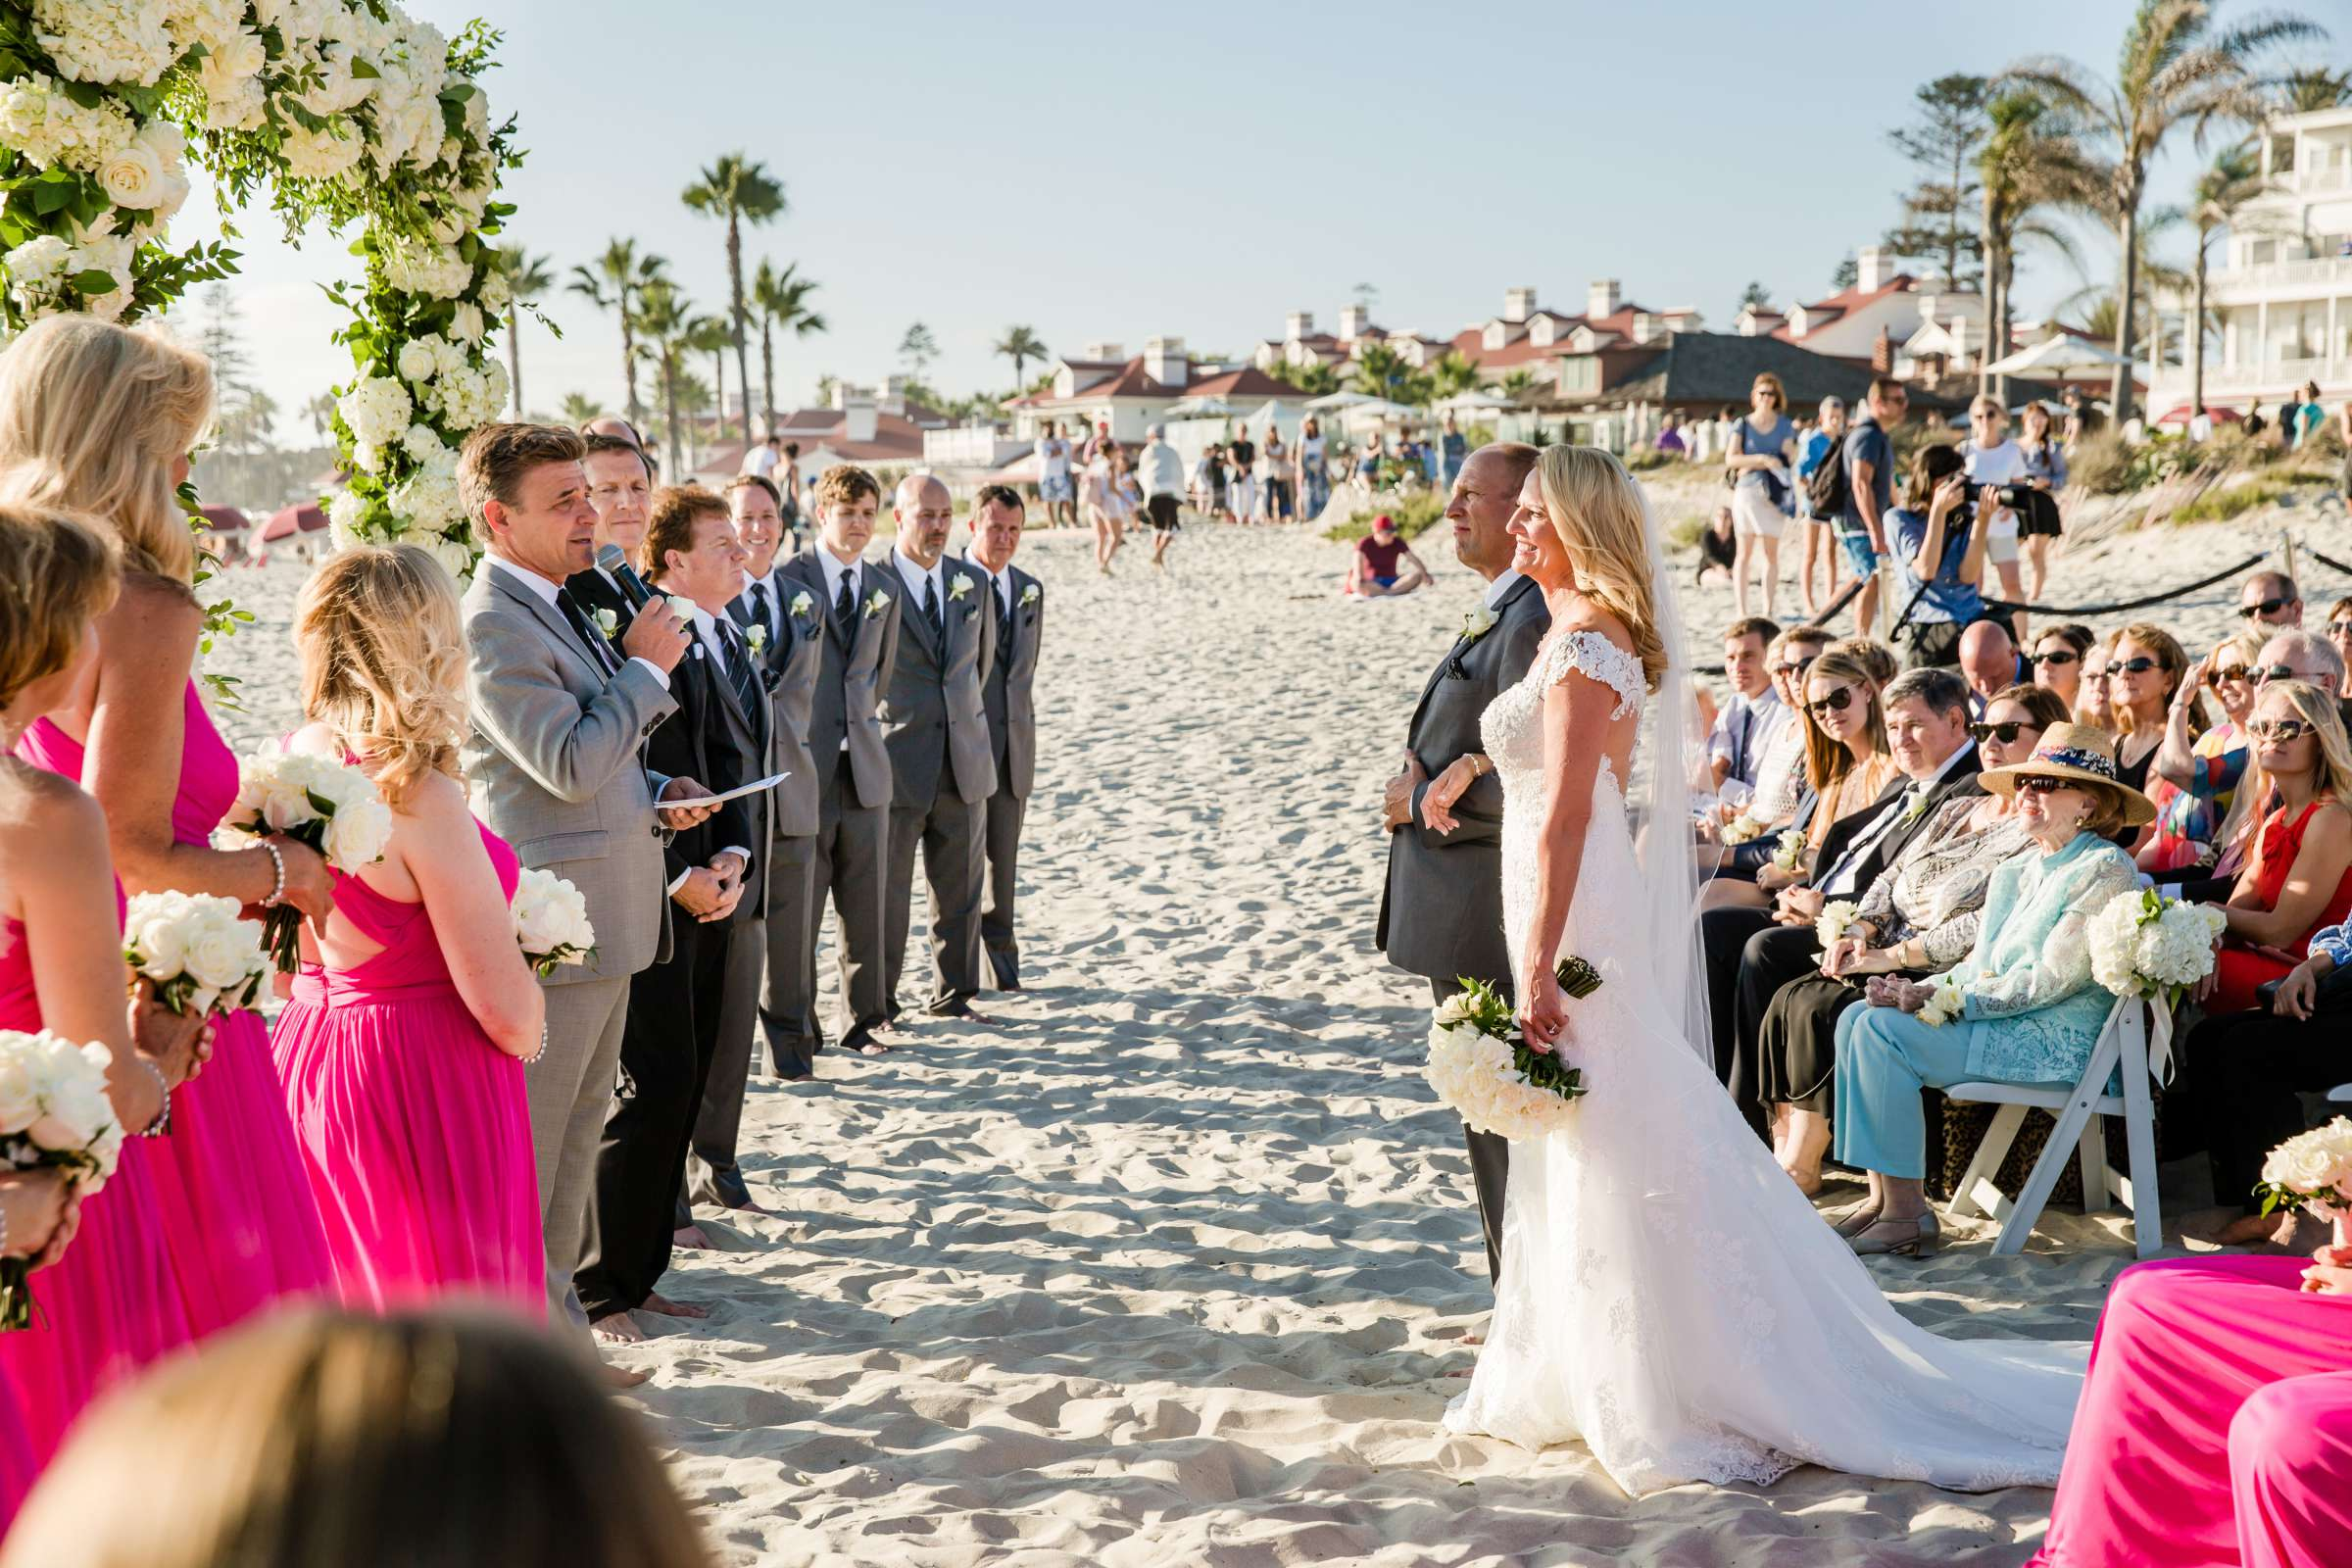 Hotel Del Coronado Wedding coordinated by Creative Affairs Inc, Diane and Paul Wedding Photo #55 by True Photography